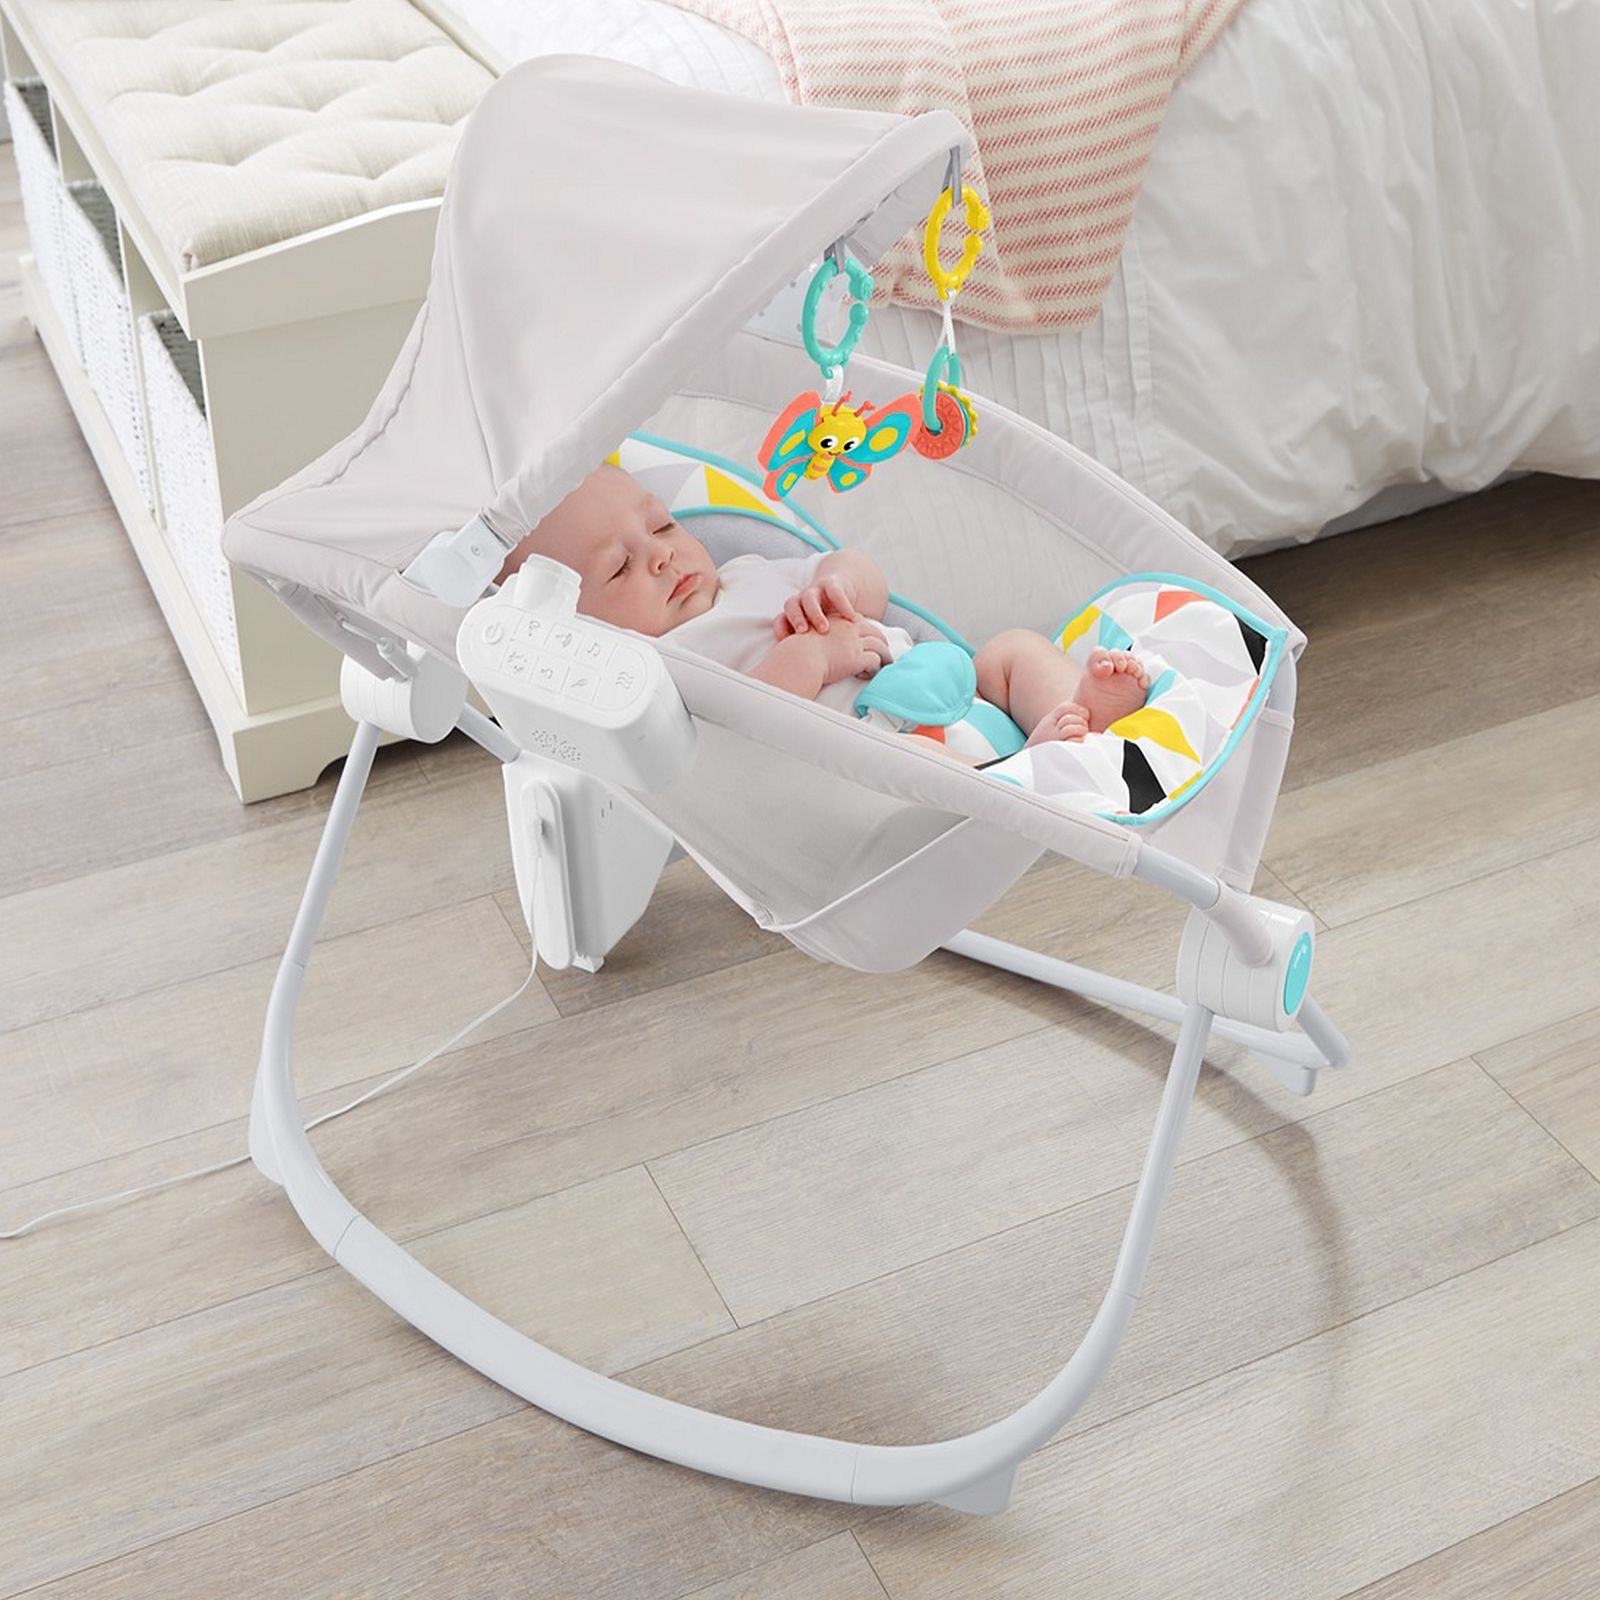 to soft cinema safety cute and use sleeper play rock price includes with an entertain lightweight adorable fisher baby ears luxurious easy cradle plush n newborn fabrics bunny